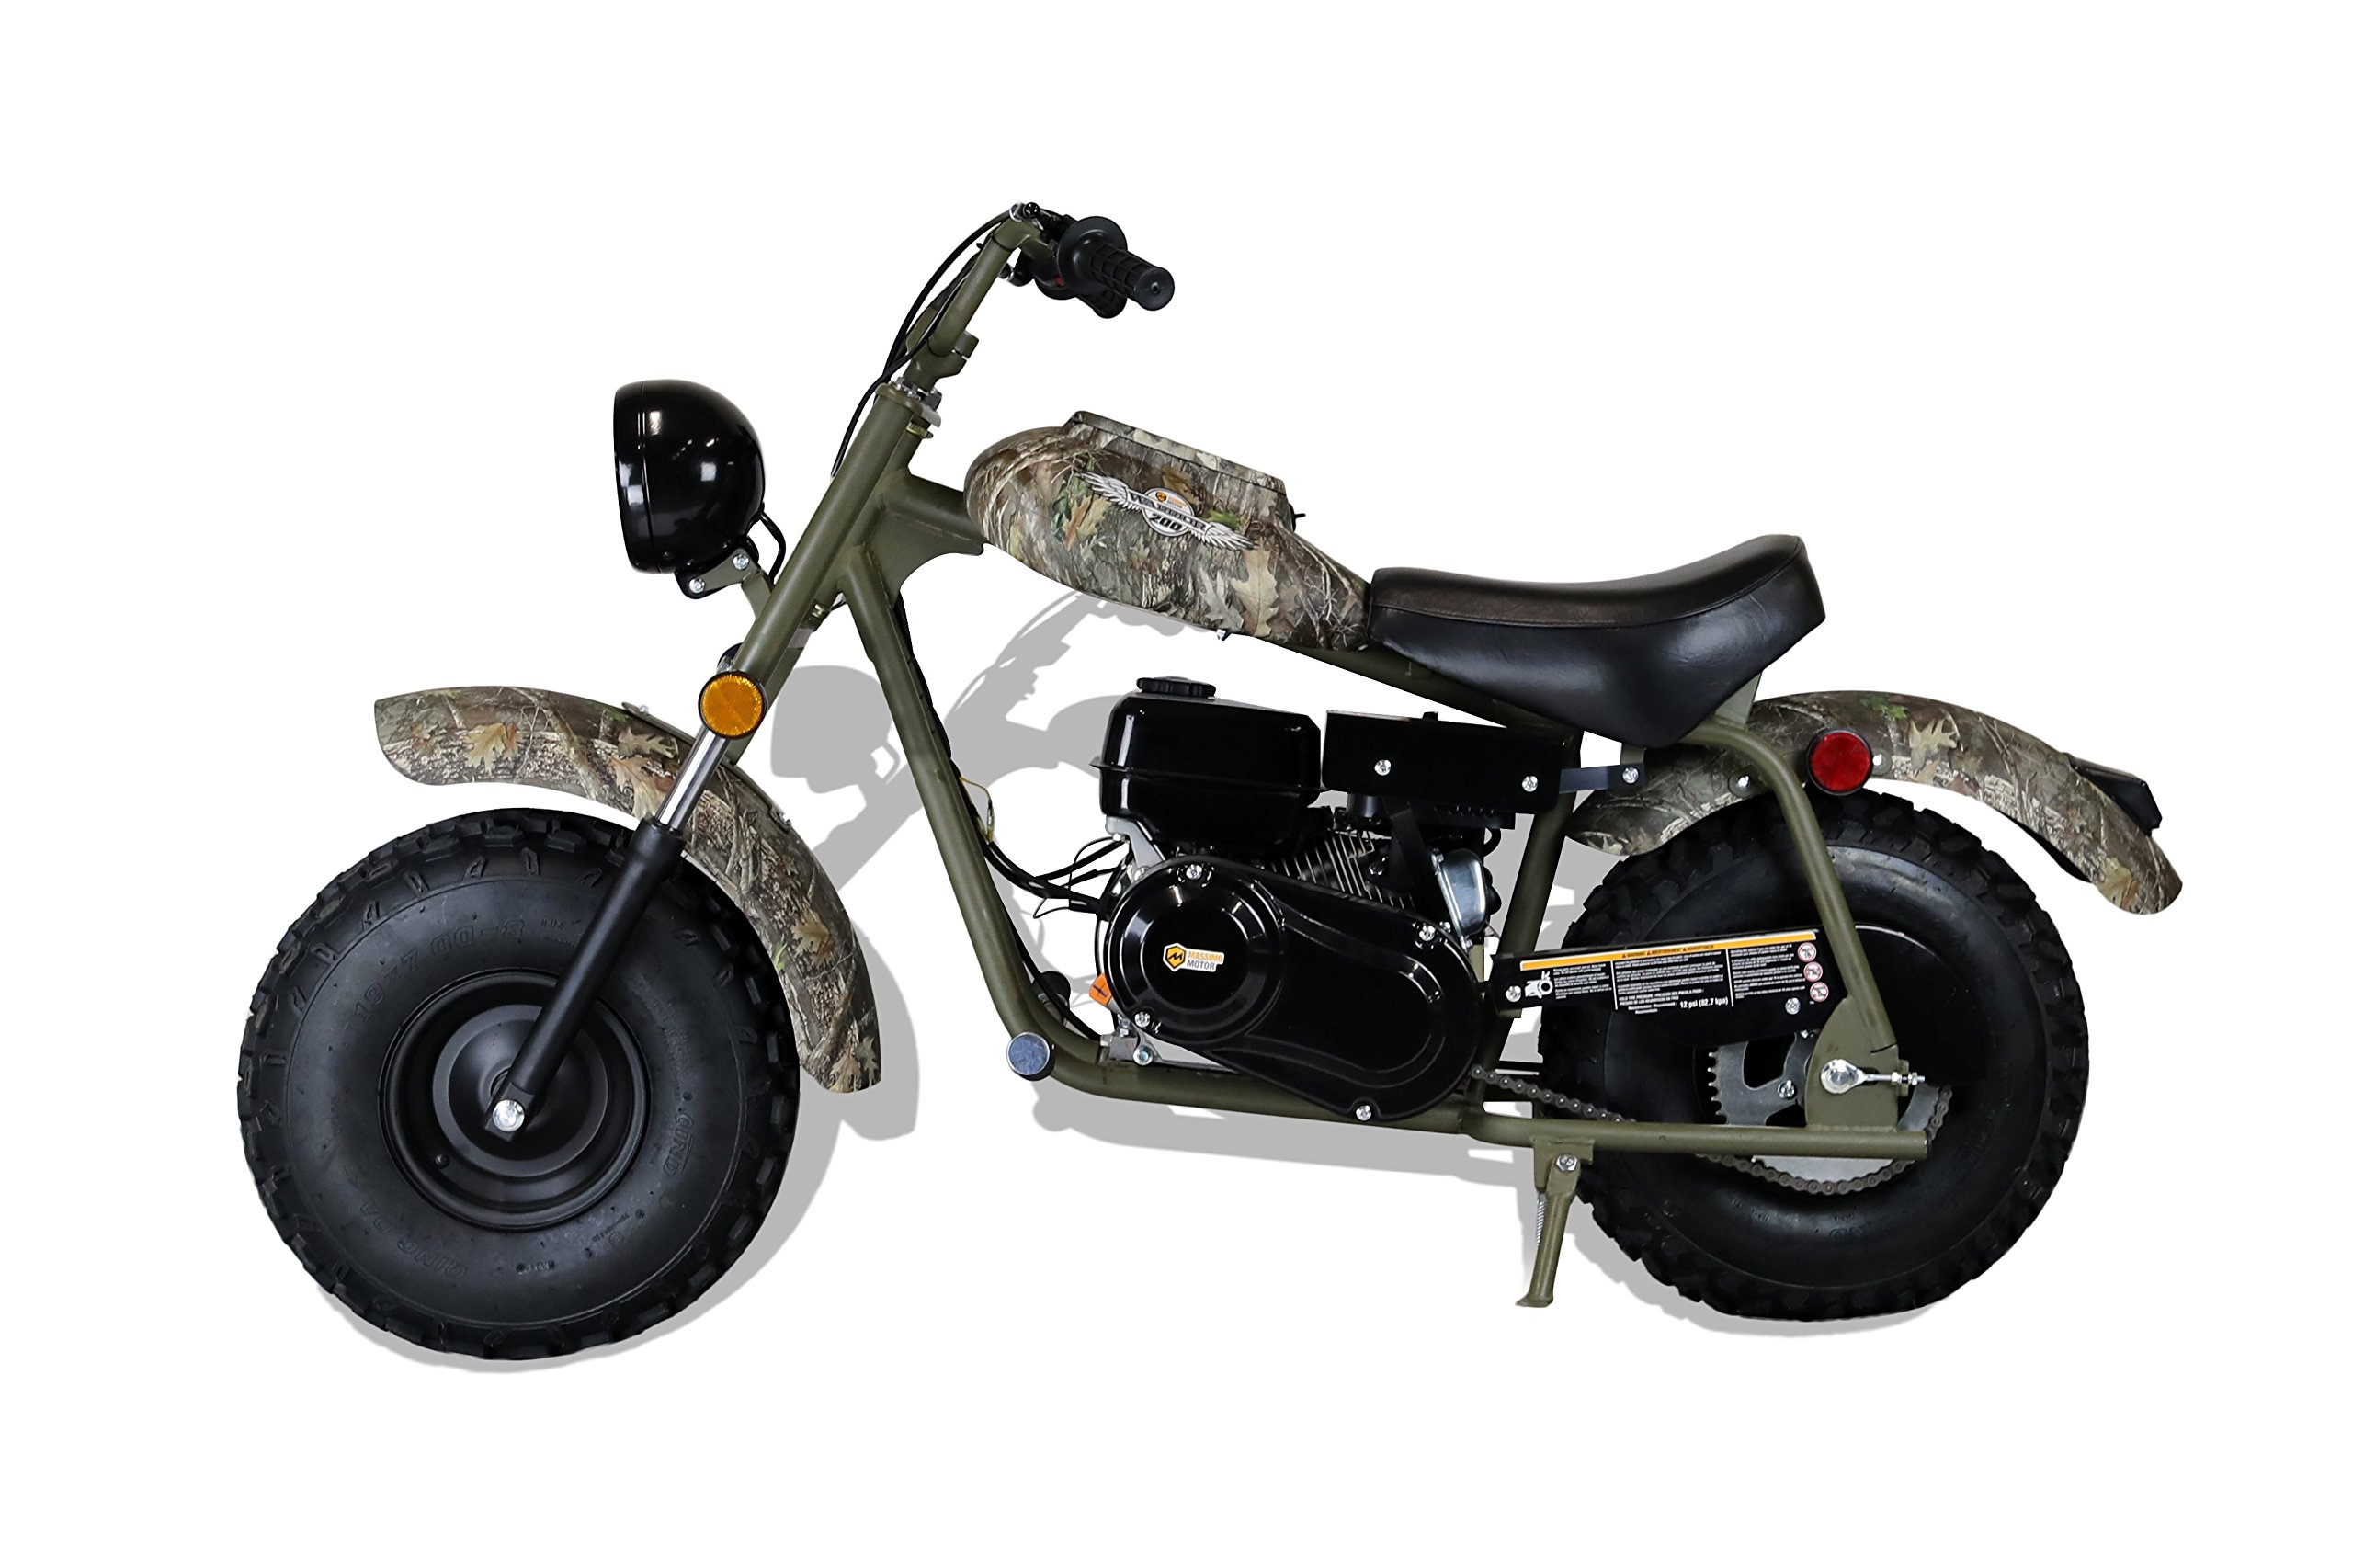 MASSIMO MB200 SUPERSIZED 196CC MINI BIKE - SHIPPING & WARRANTY INCLUDED! by M MASSIMO MOTOR (Image #2)